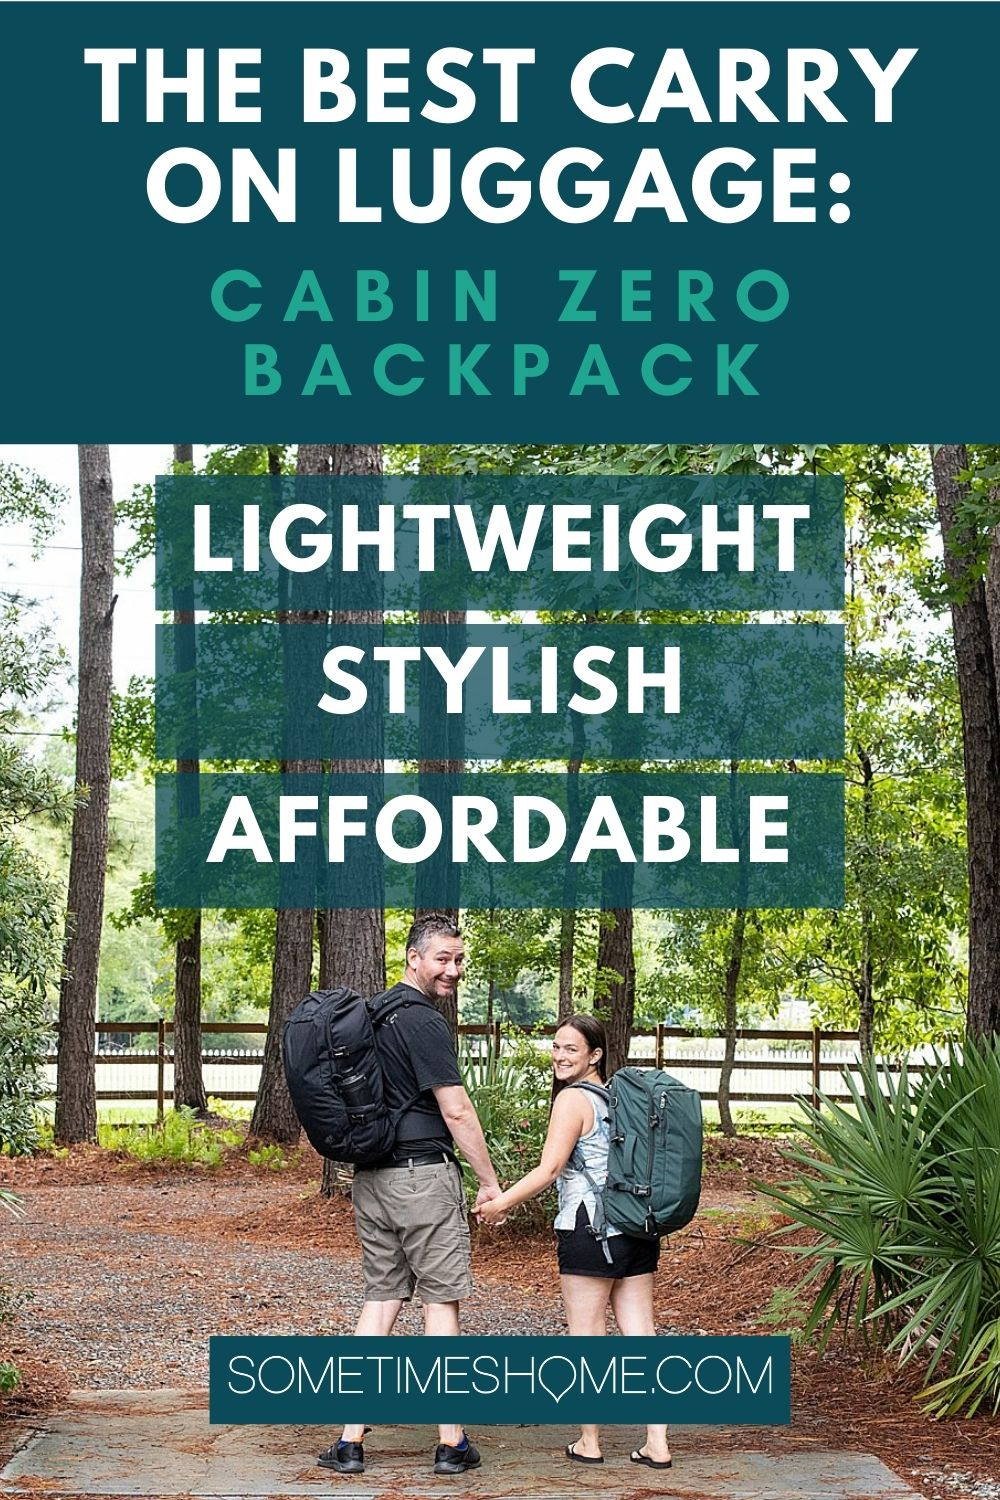 Pinterest image for The Best Carry On Luggage: Cabin Zero Backpack, Lightweight, Stylish and Affordable, with a photo of a couple.